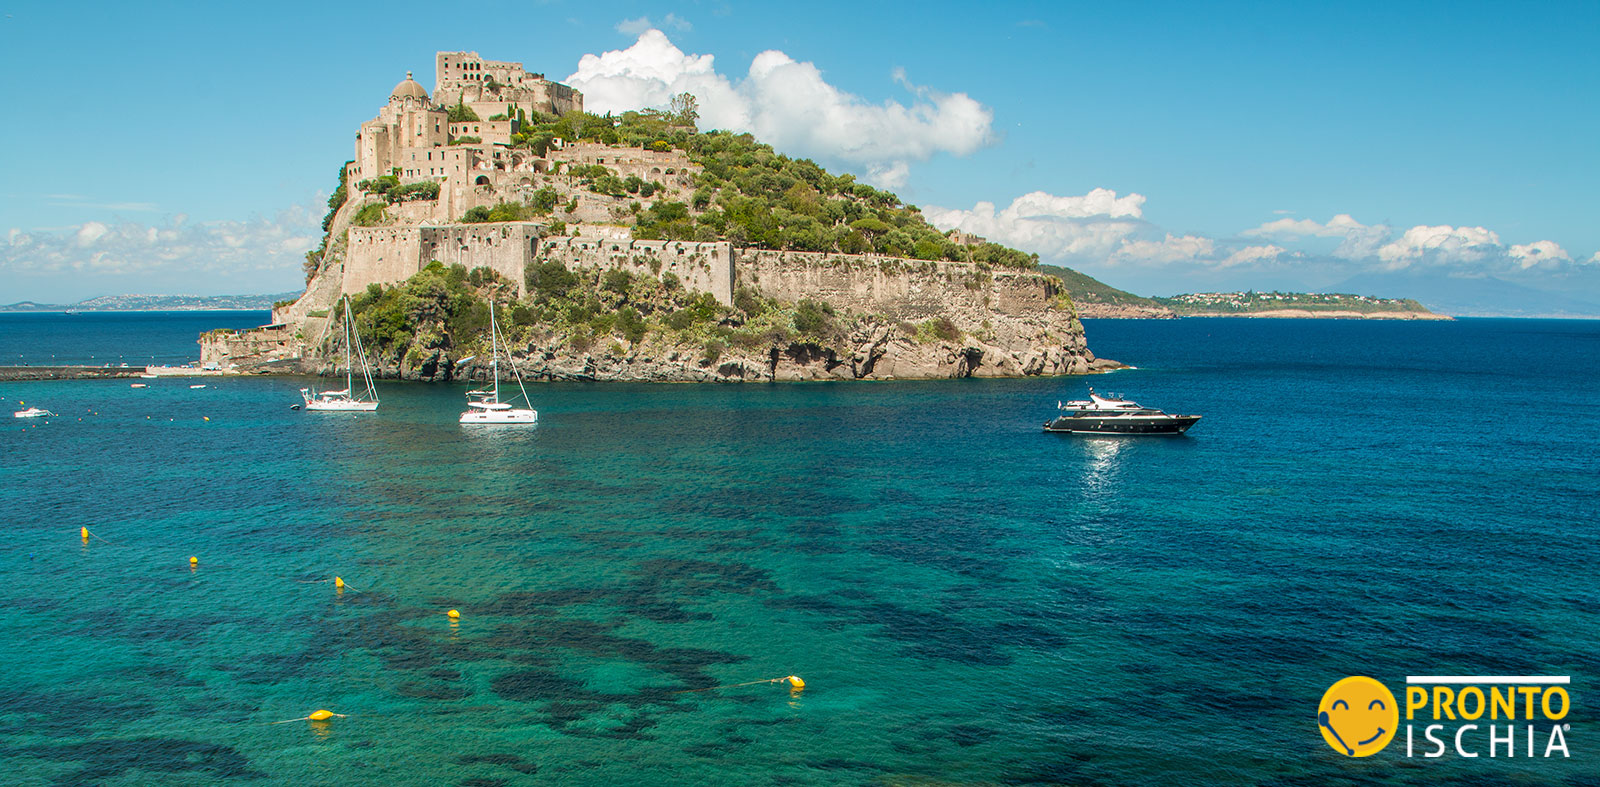 Ischia and Naples International Festival of Philosophy